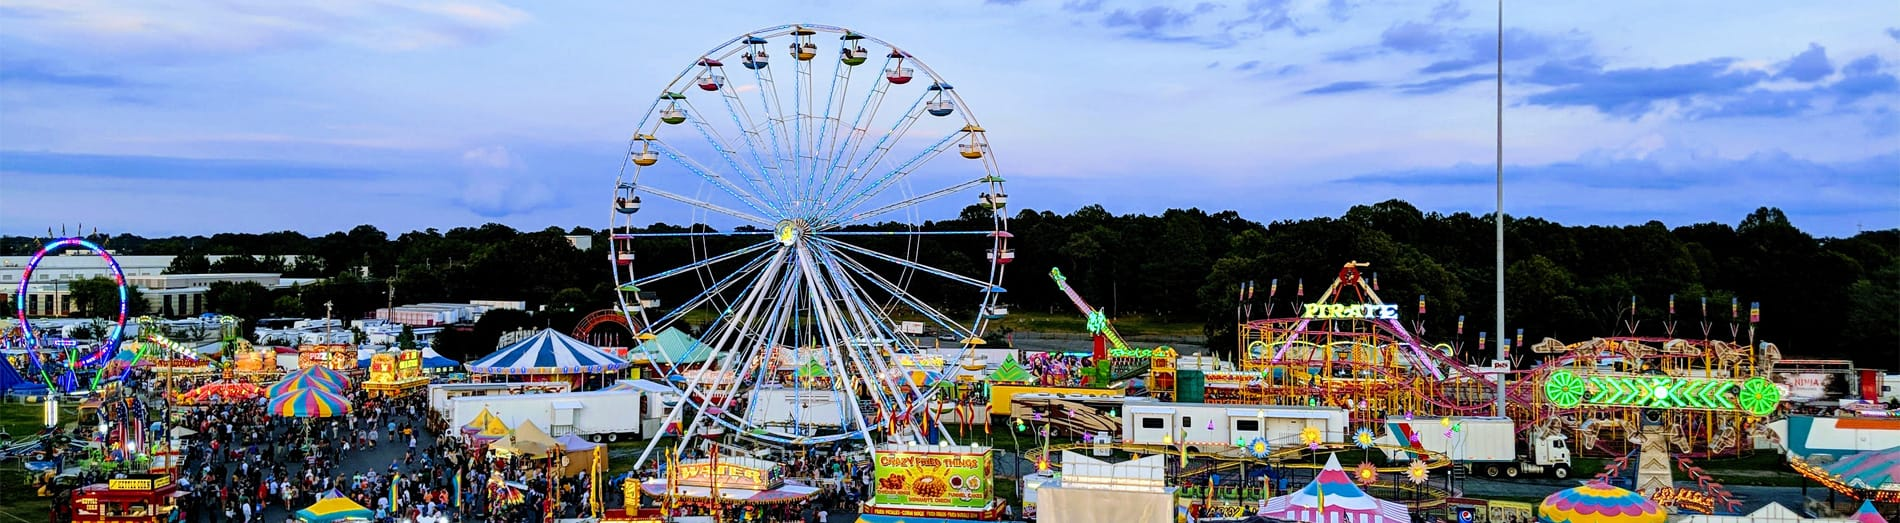 5 Festivals and Fairs in Winston-Salem, NC